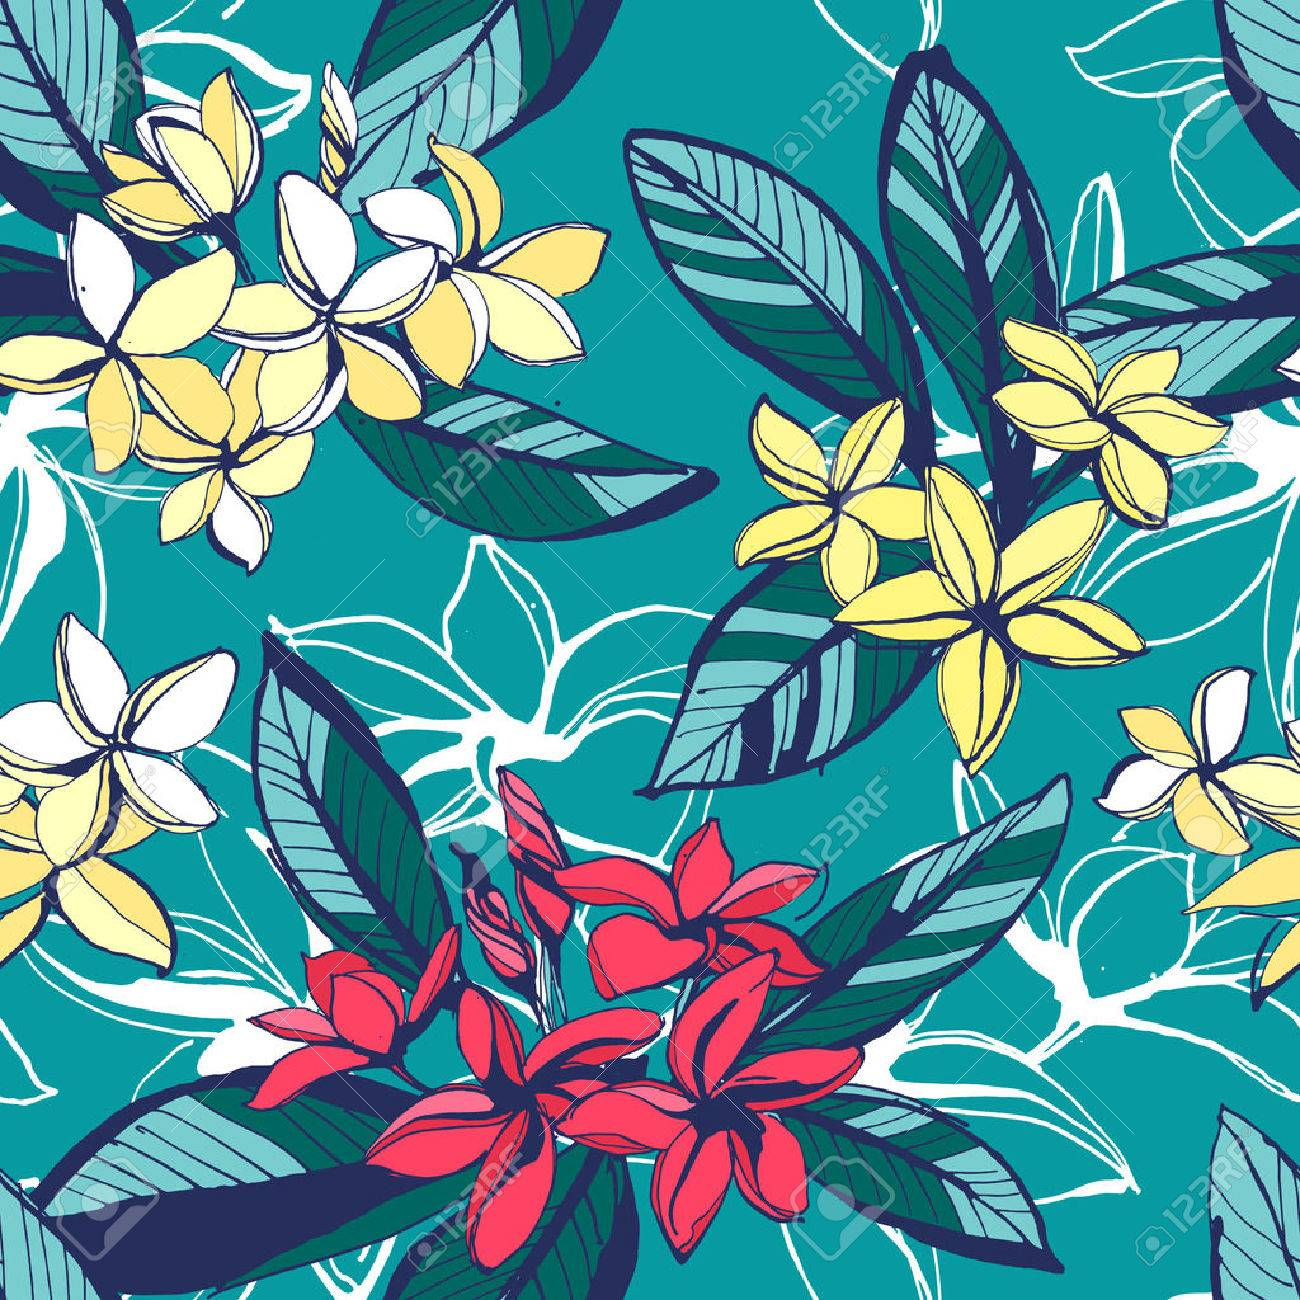 Vector illustration Tropical floral summer seamless pattern with plumeria flowers with leaves. Ink splatter grunge style.Texture, floral design, palm beach, tropical background, summer time, summer beach party - 58154405